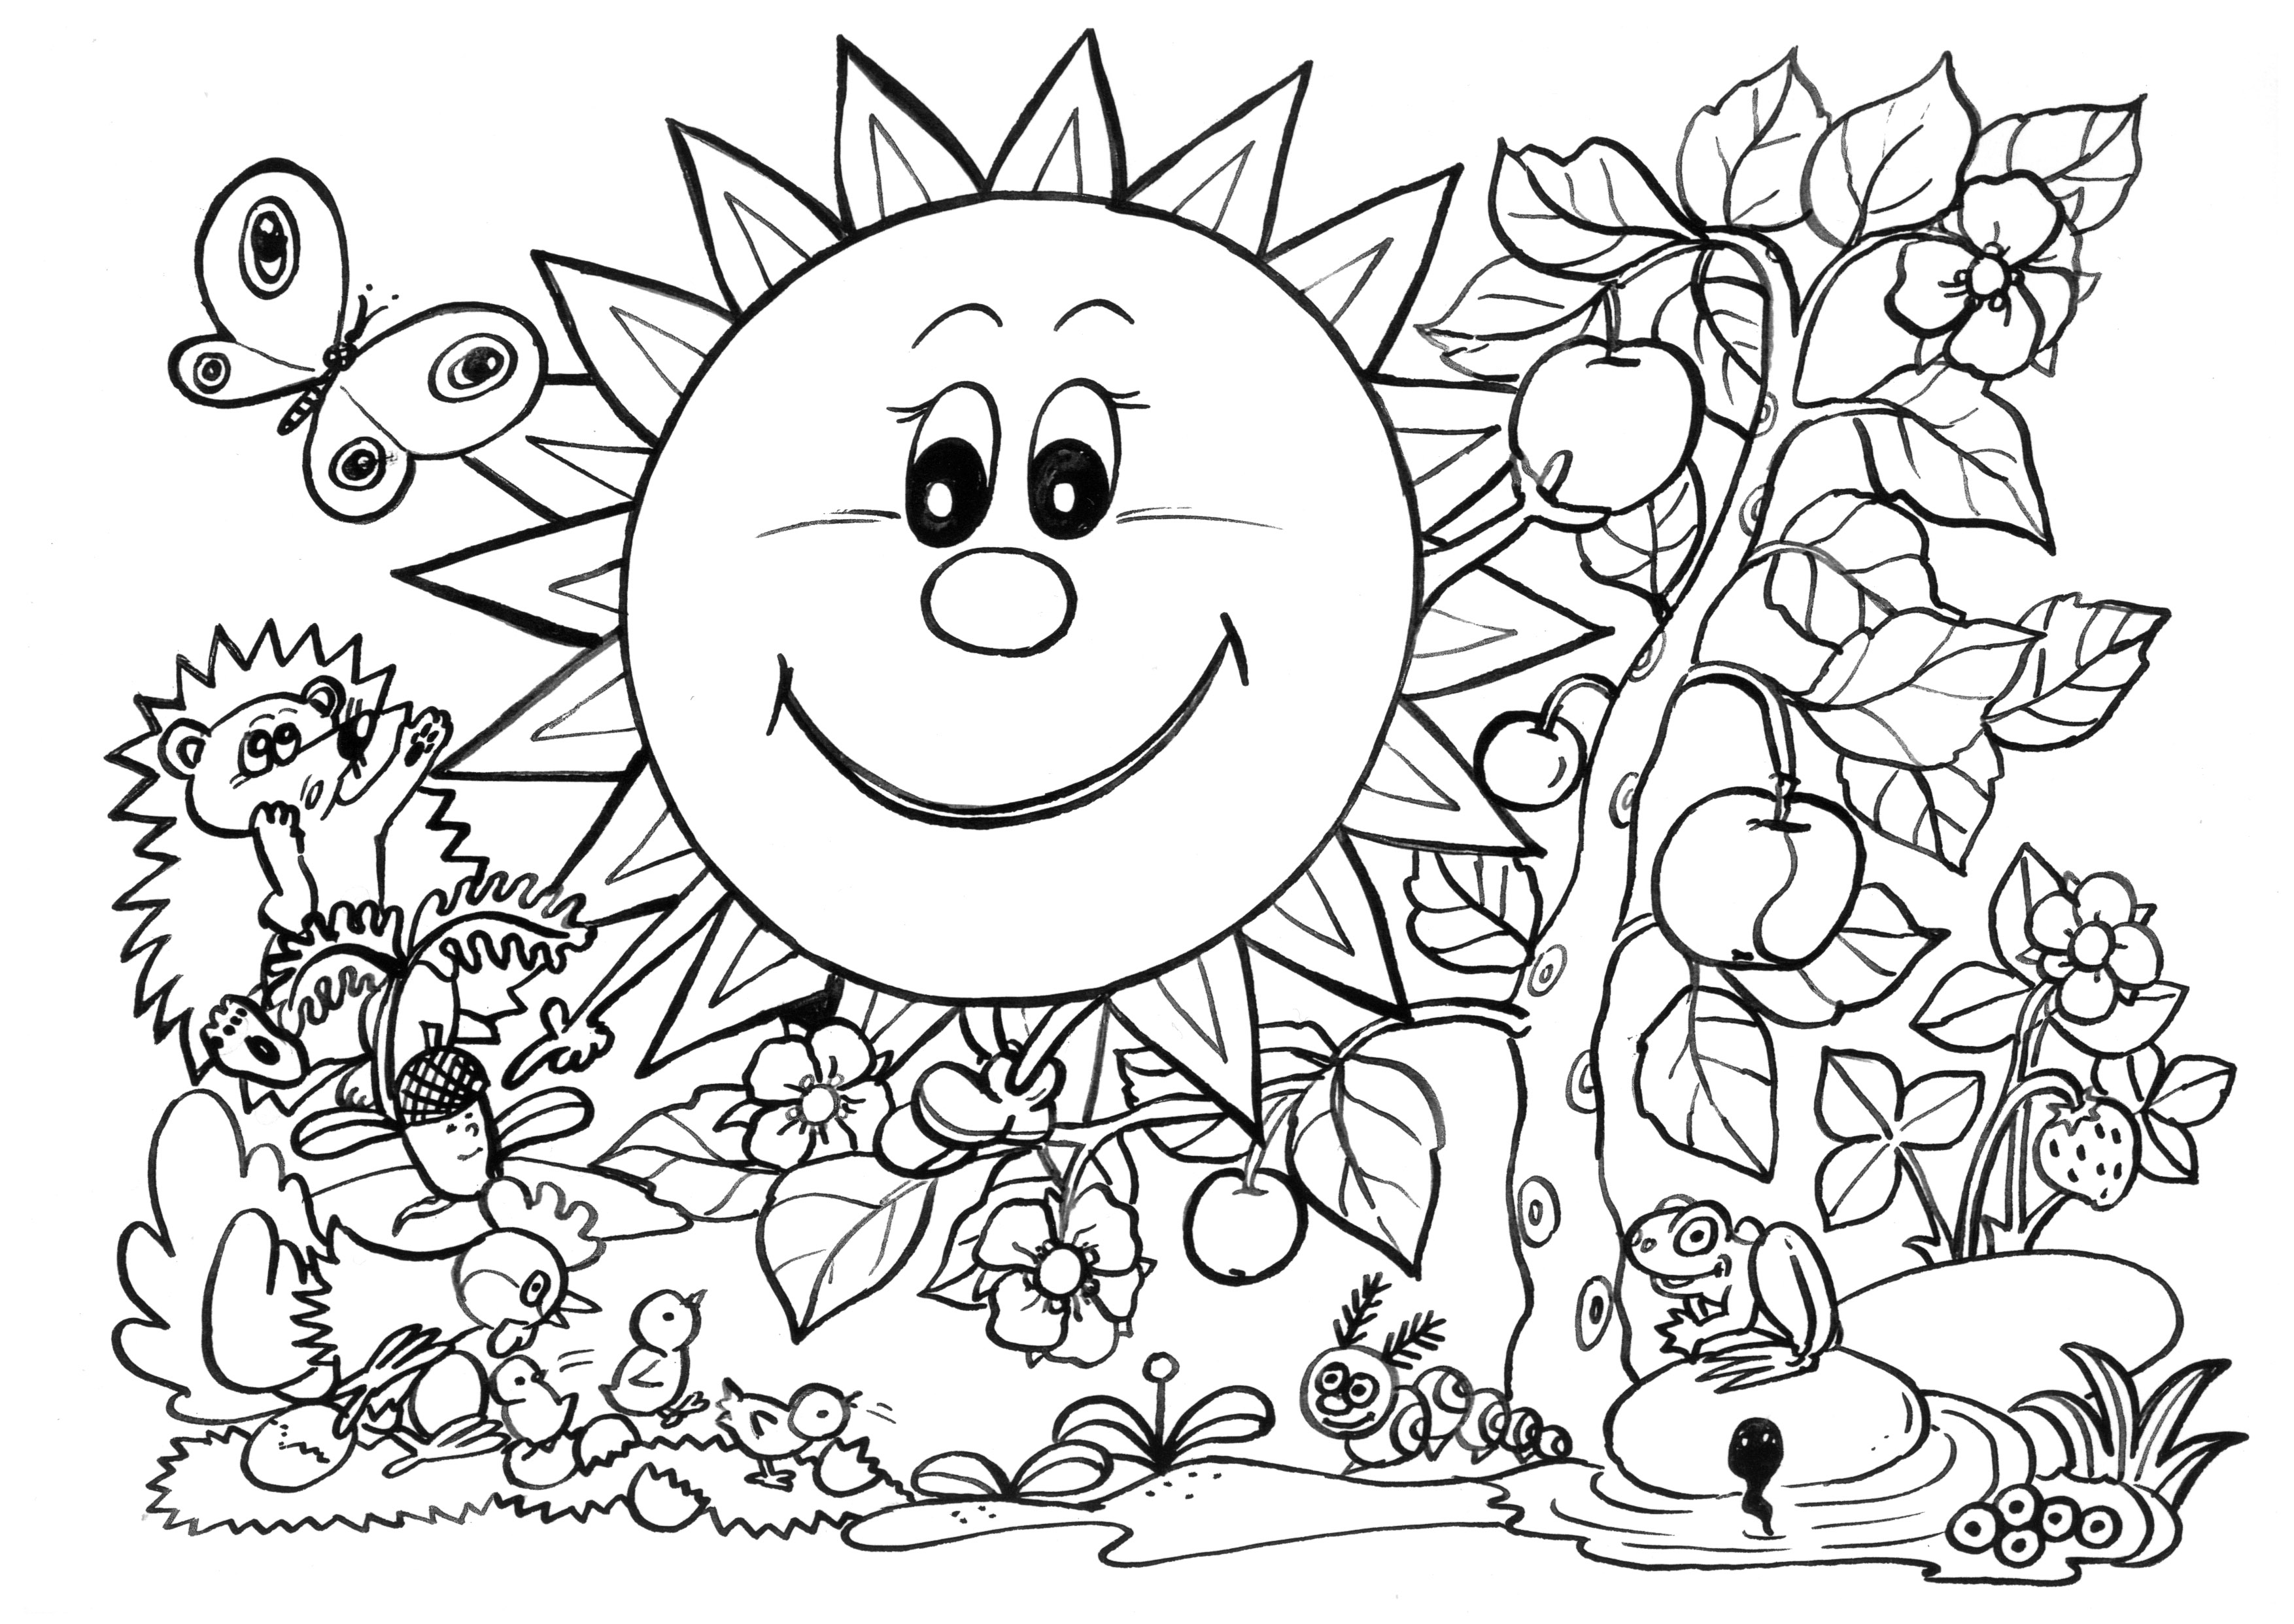 coloring pages free printable full size pictures to color - HD3508×2484